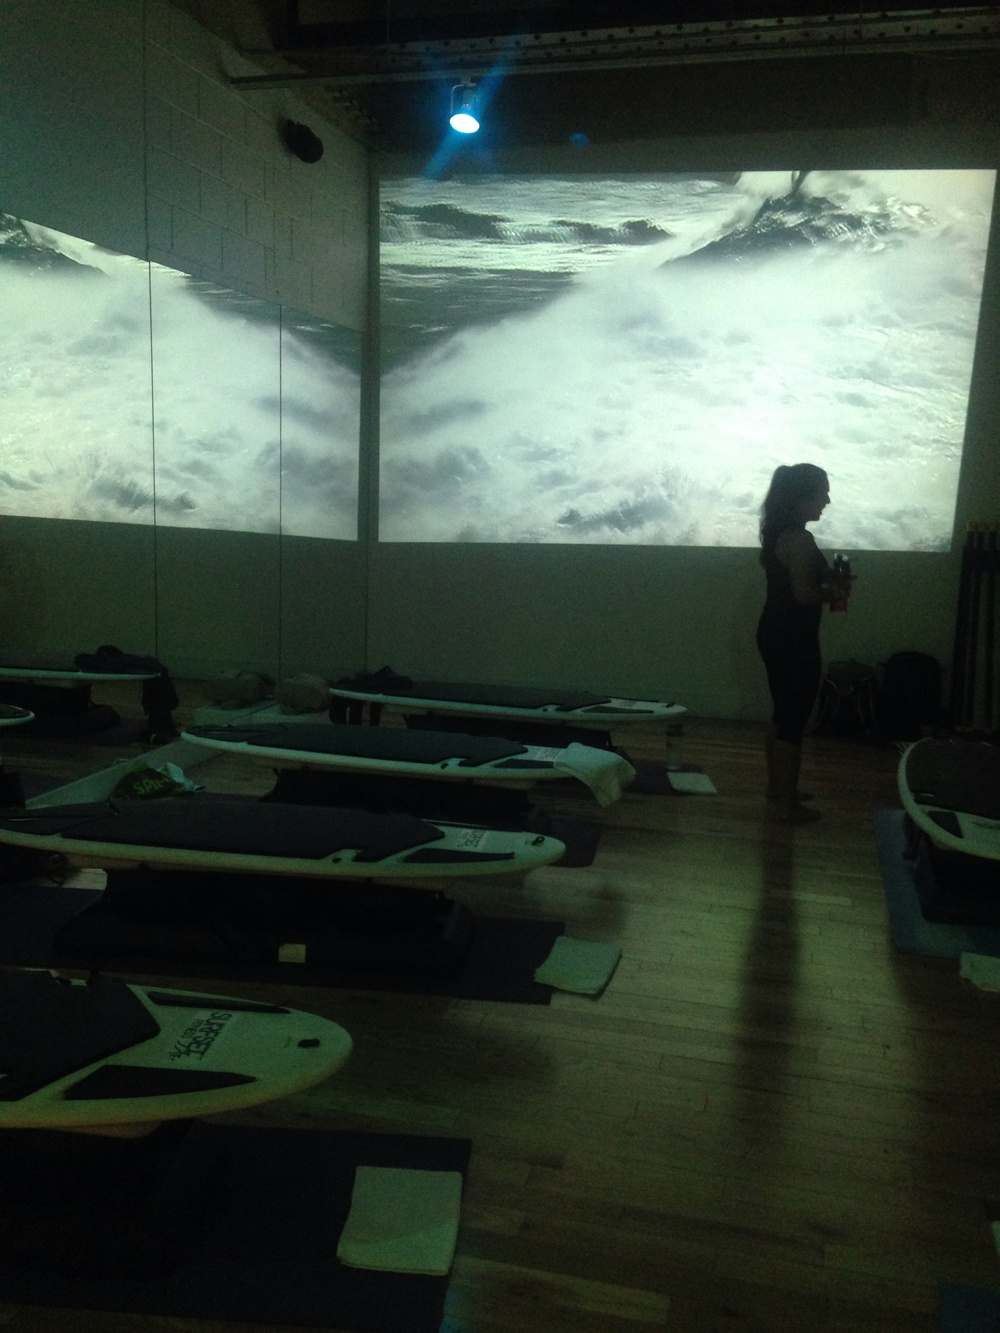 8 hours of Surfset. The Sports Center at Chelsea Piers.